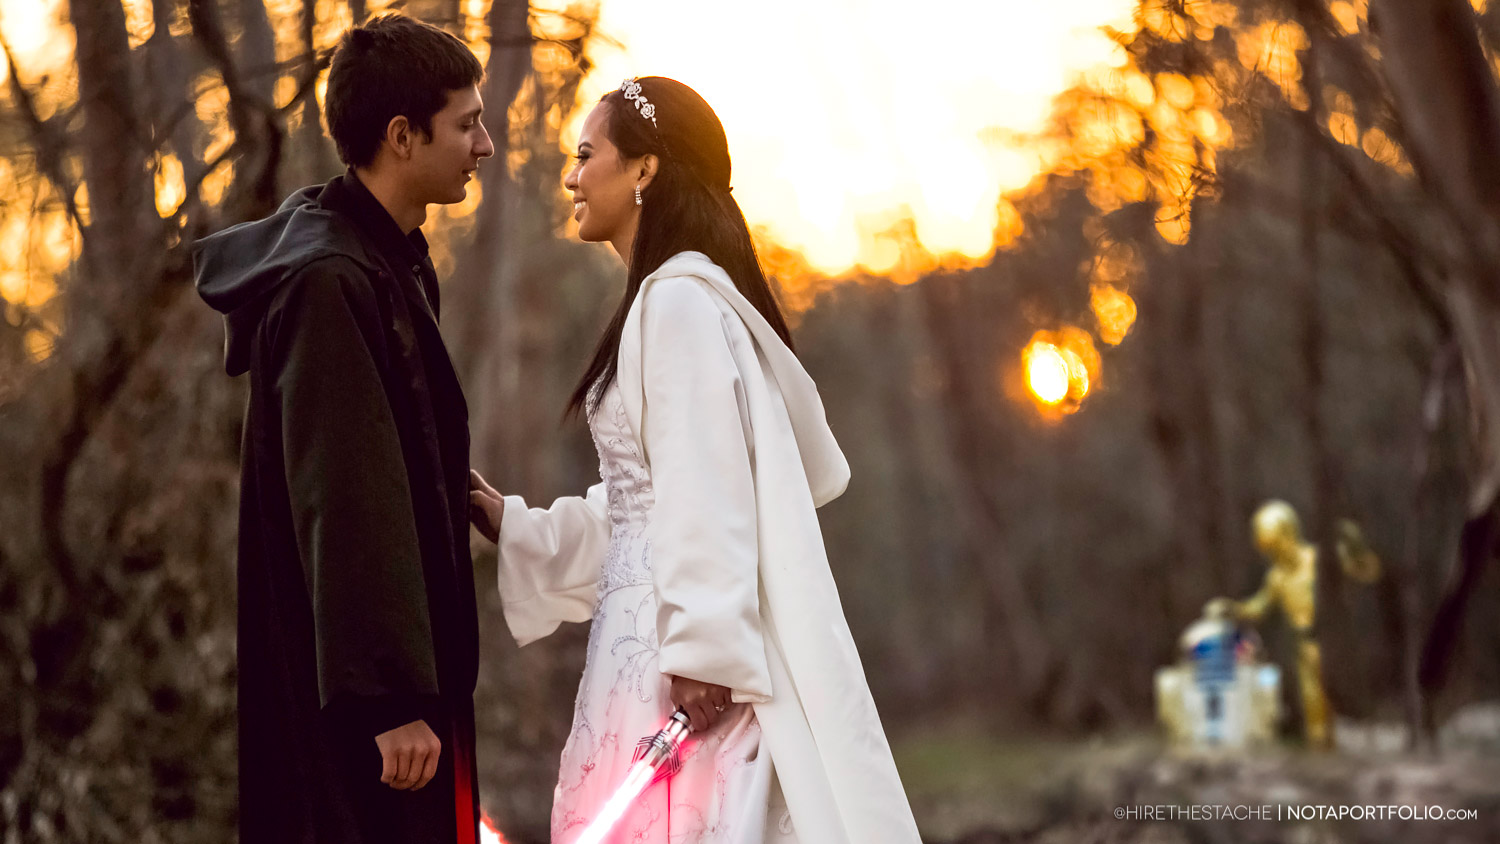 Star Wars Wedding on 5000 Budget Features Lightsabers